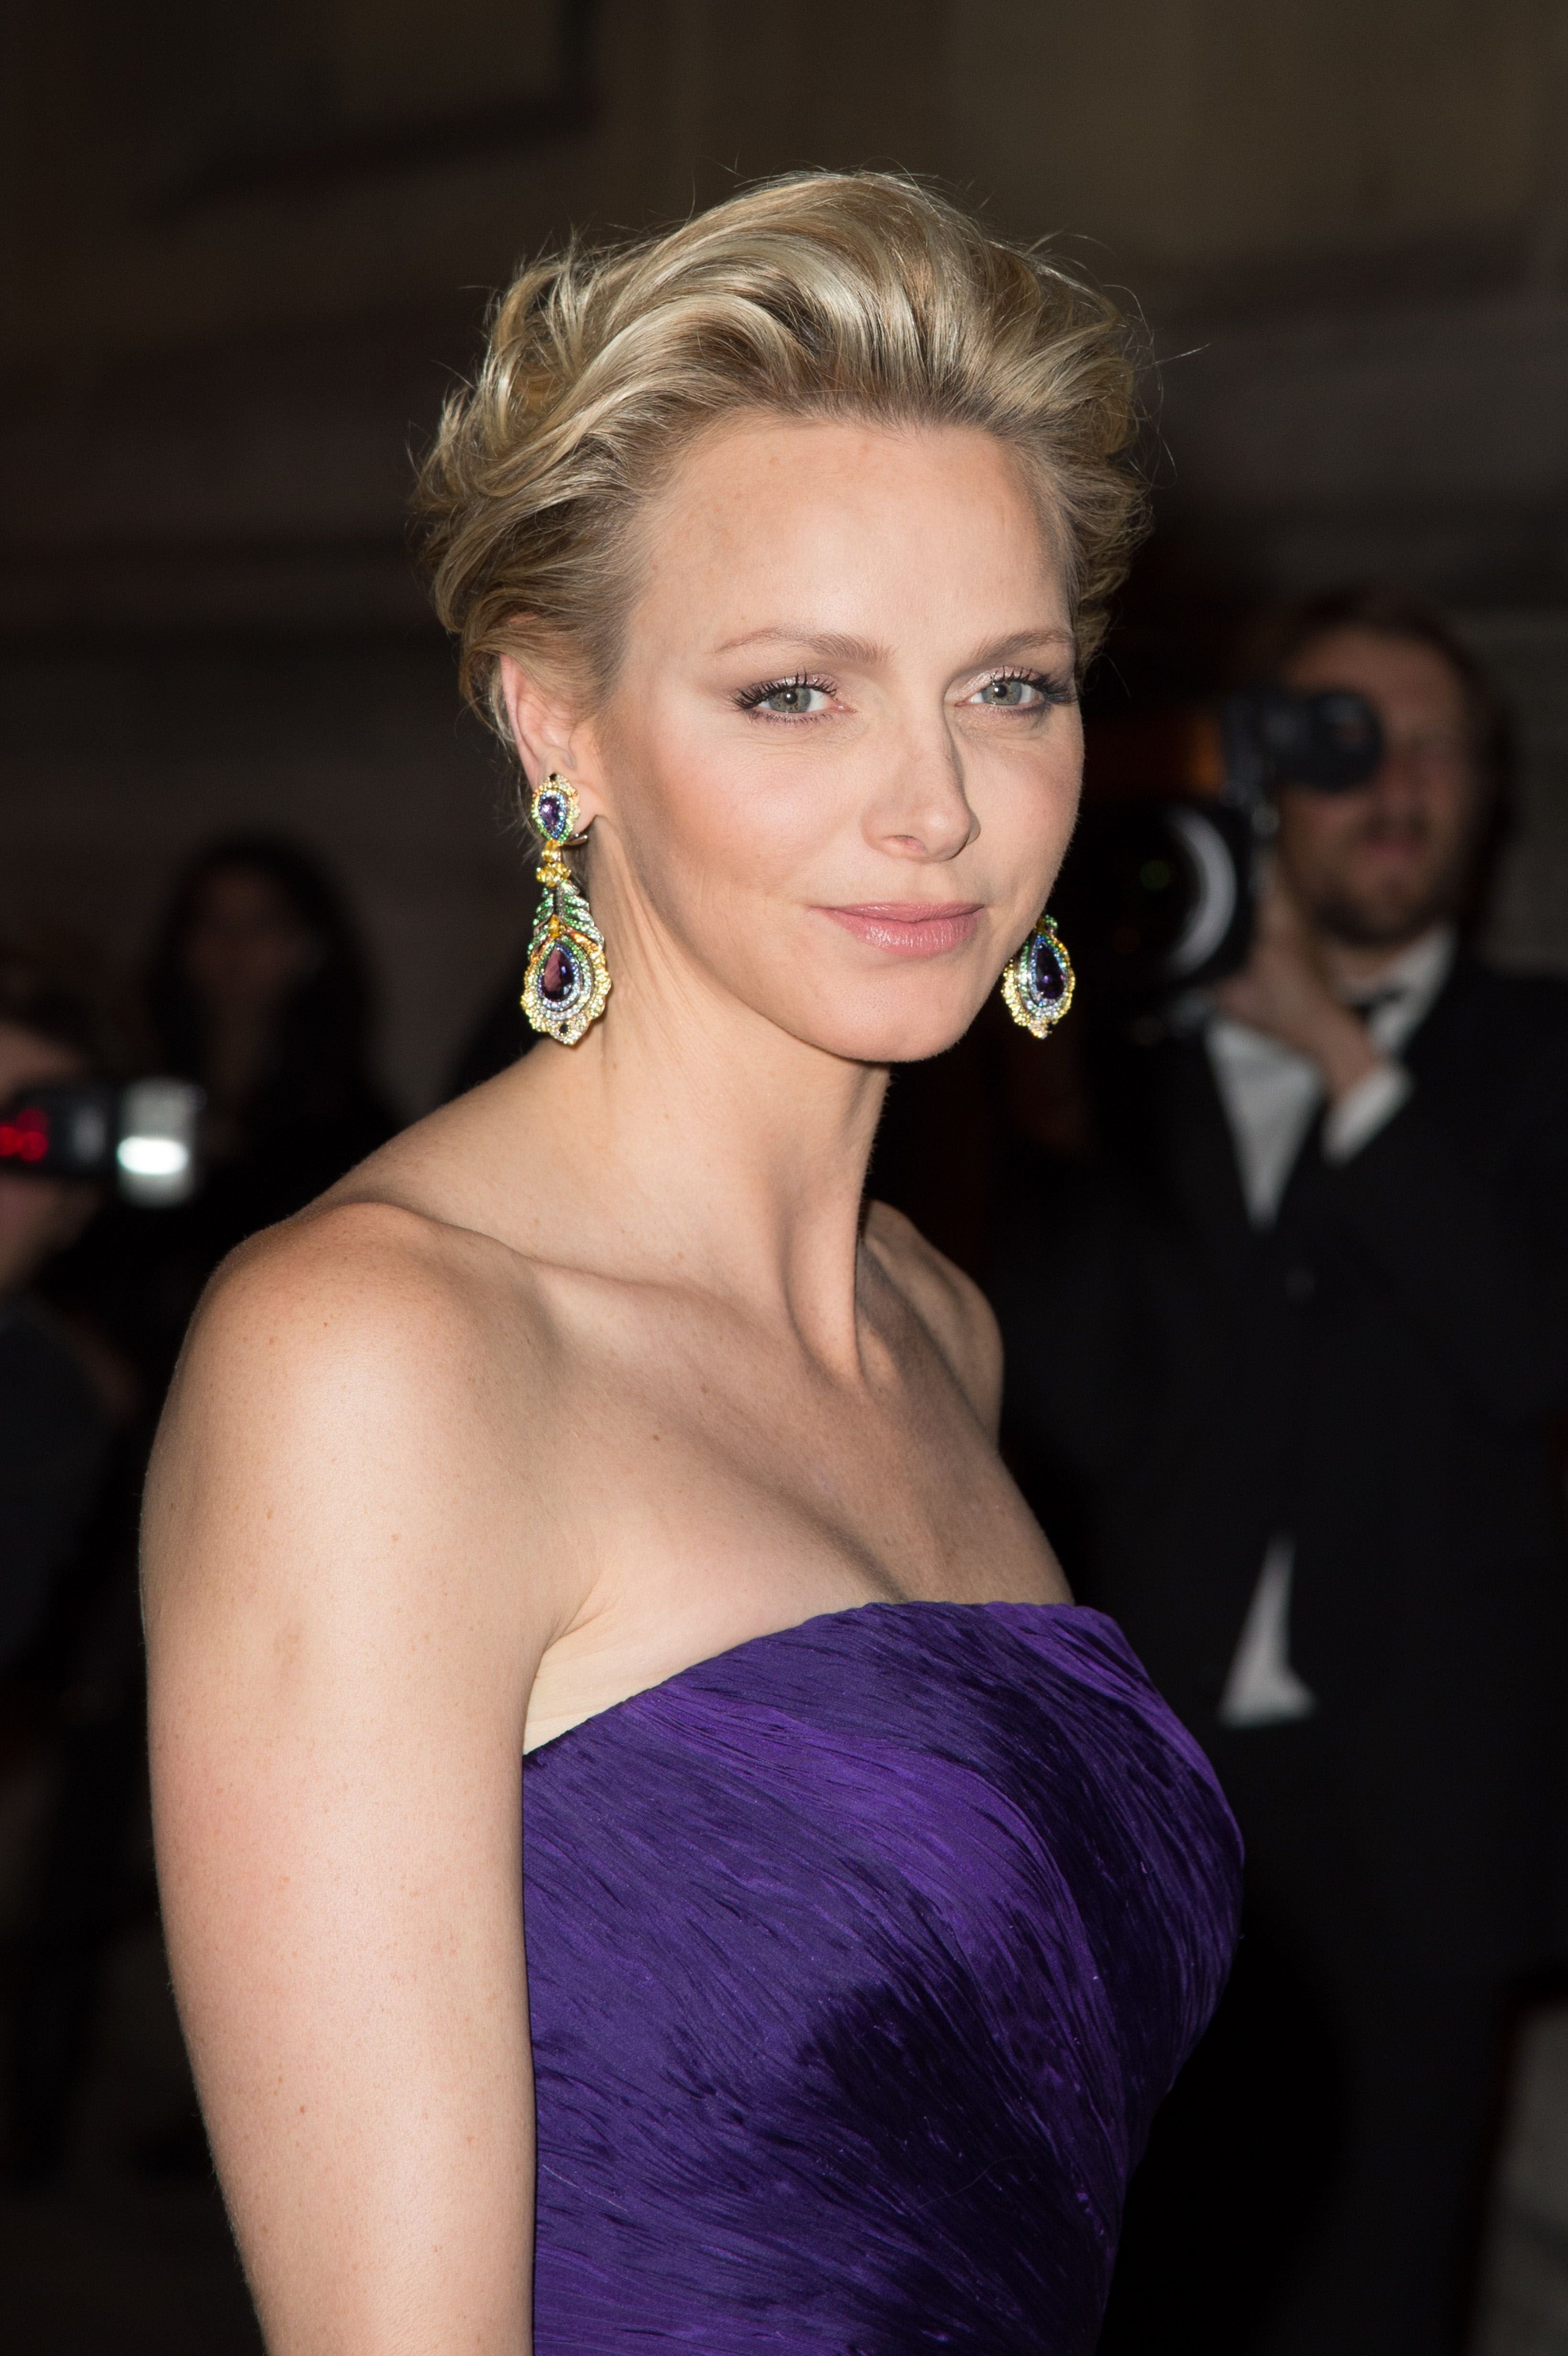 La princesse Charlène de Monaco aux Beaux-Arts de Paris le 8 octobre 2013 à Paris, France. | Photo : Getty Images